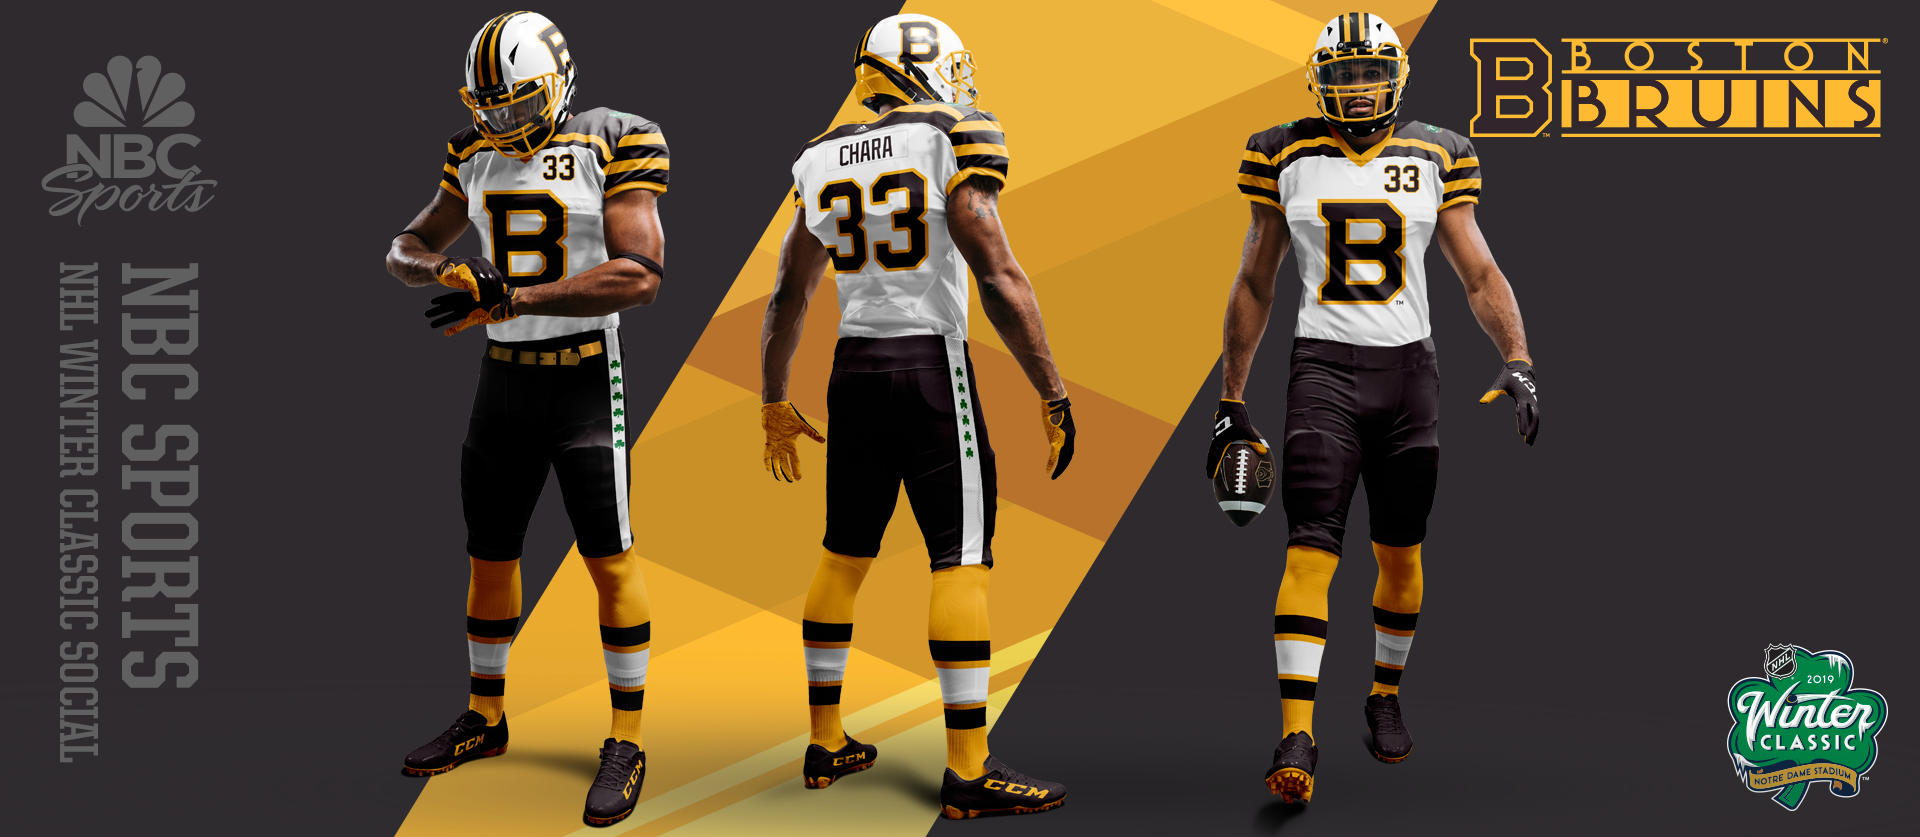 NHL Winter Classic - Boston Football Uniforms